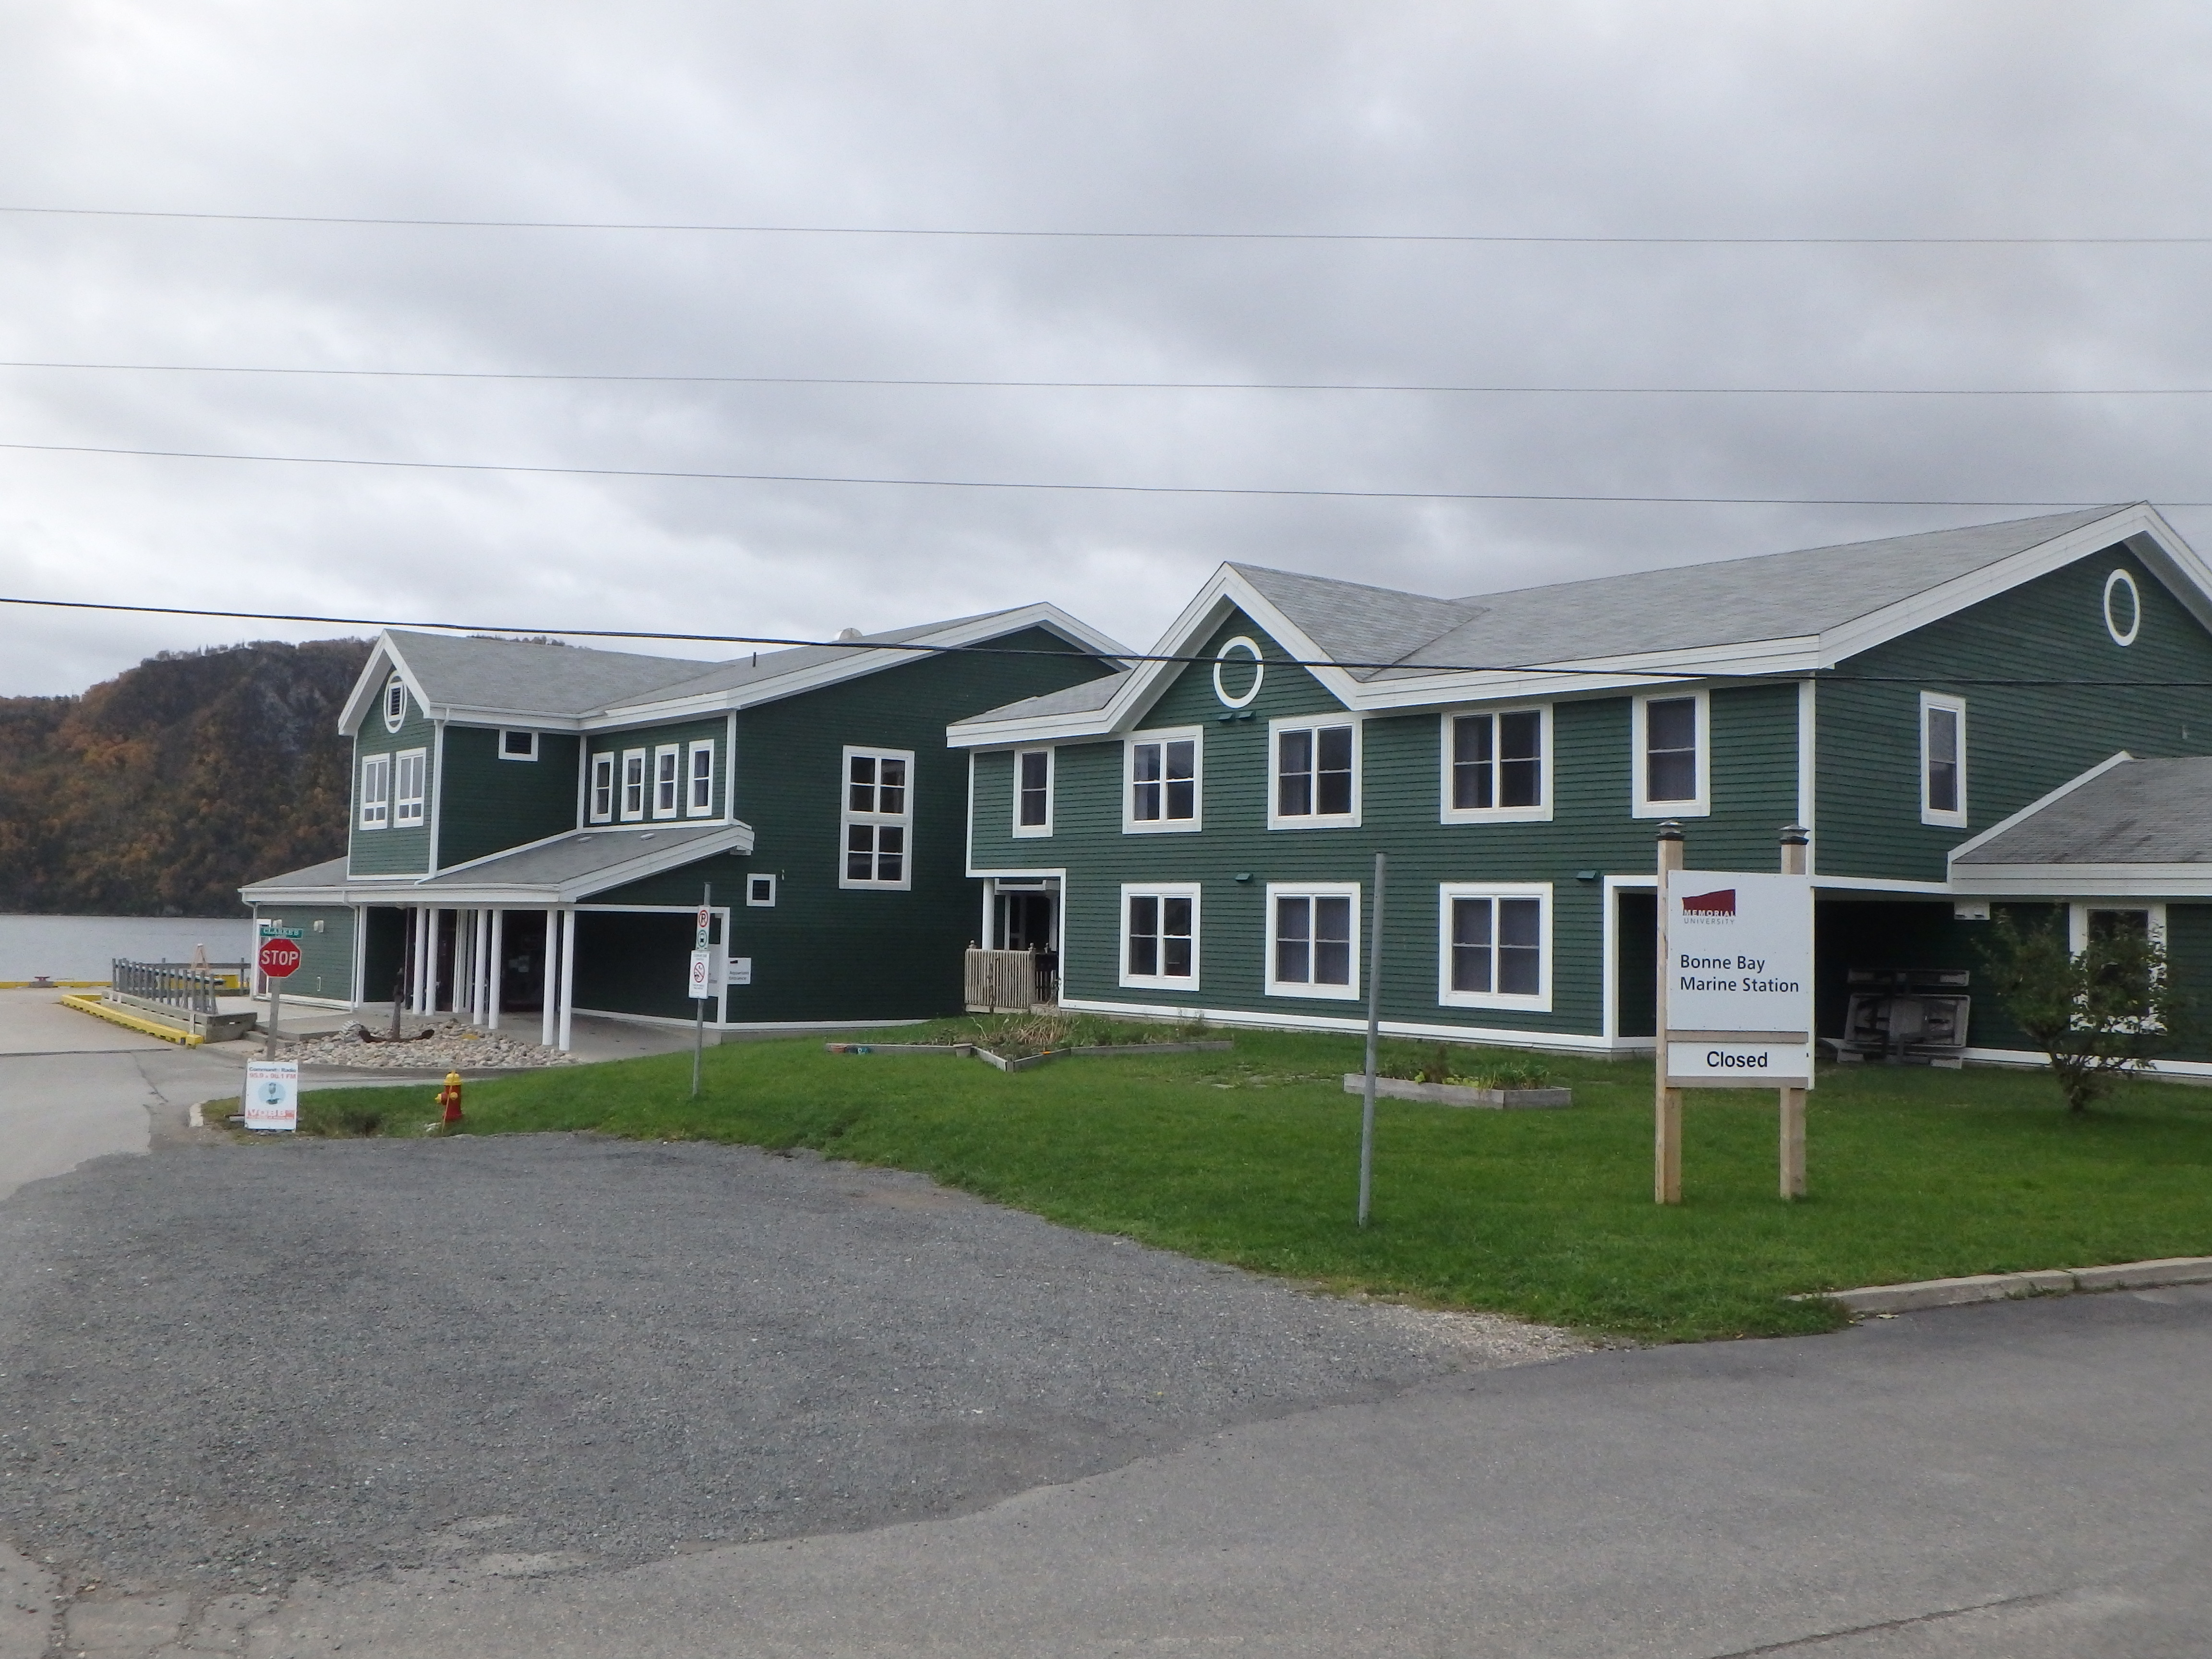 Bonne Bay Marine Station; Norris Point, Newfoundland; 2015